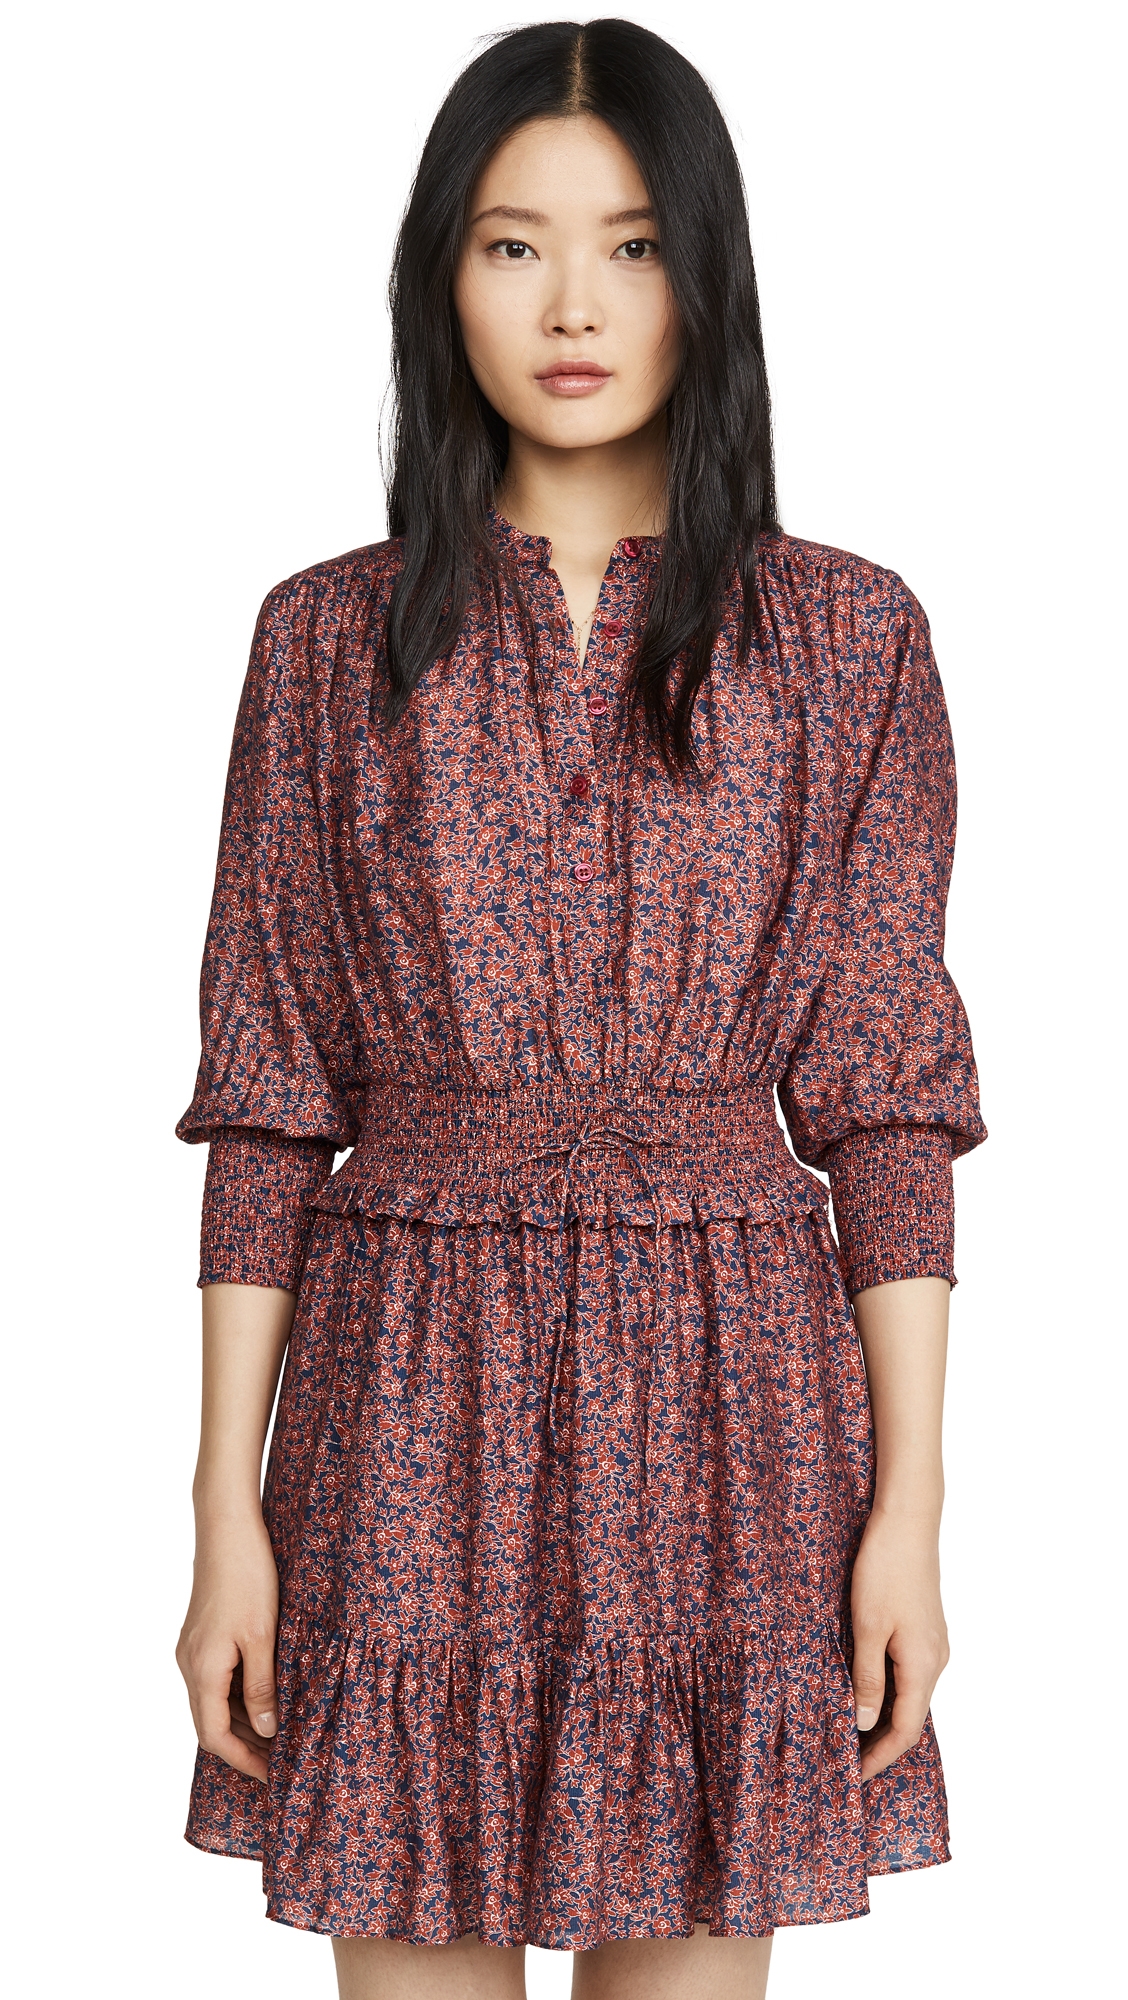 Buy Rebecca Minkoff Chloe Dress online beautiful Rebecca Minkoff Clothing, Dresses